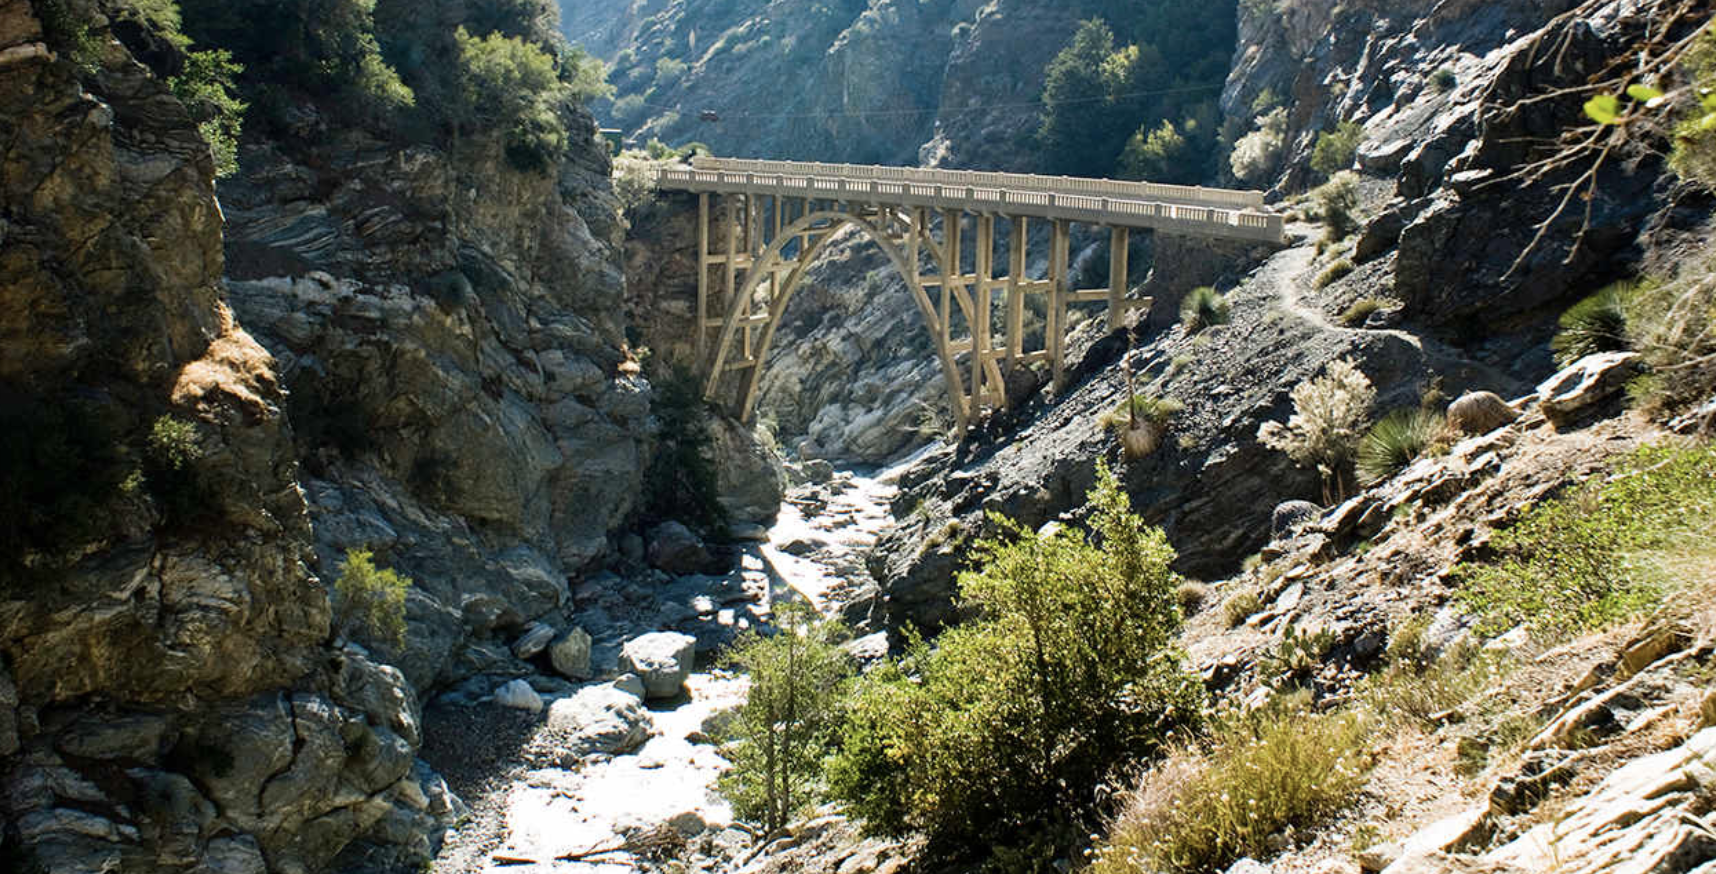 PEAK: Bridge To Nowhere - DIFFICULTY: 4/510.5 mile trail with almost 2000 ft of elevation gain and multiple river crossings!SCENERY: streams, water holes, trees, and a giant bridge!FUN FACT: Big Horn Sheep sightings are fairly common on this trail! Keep an eye out for them :)